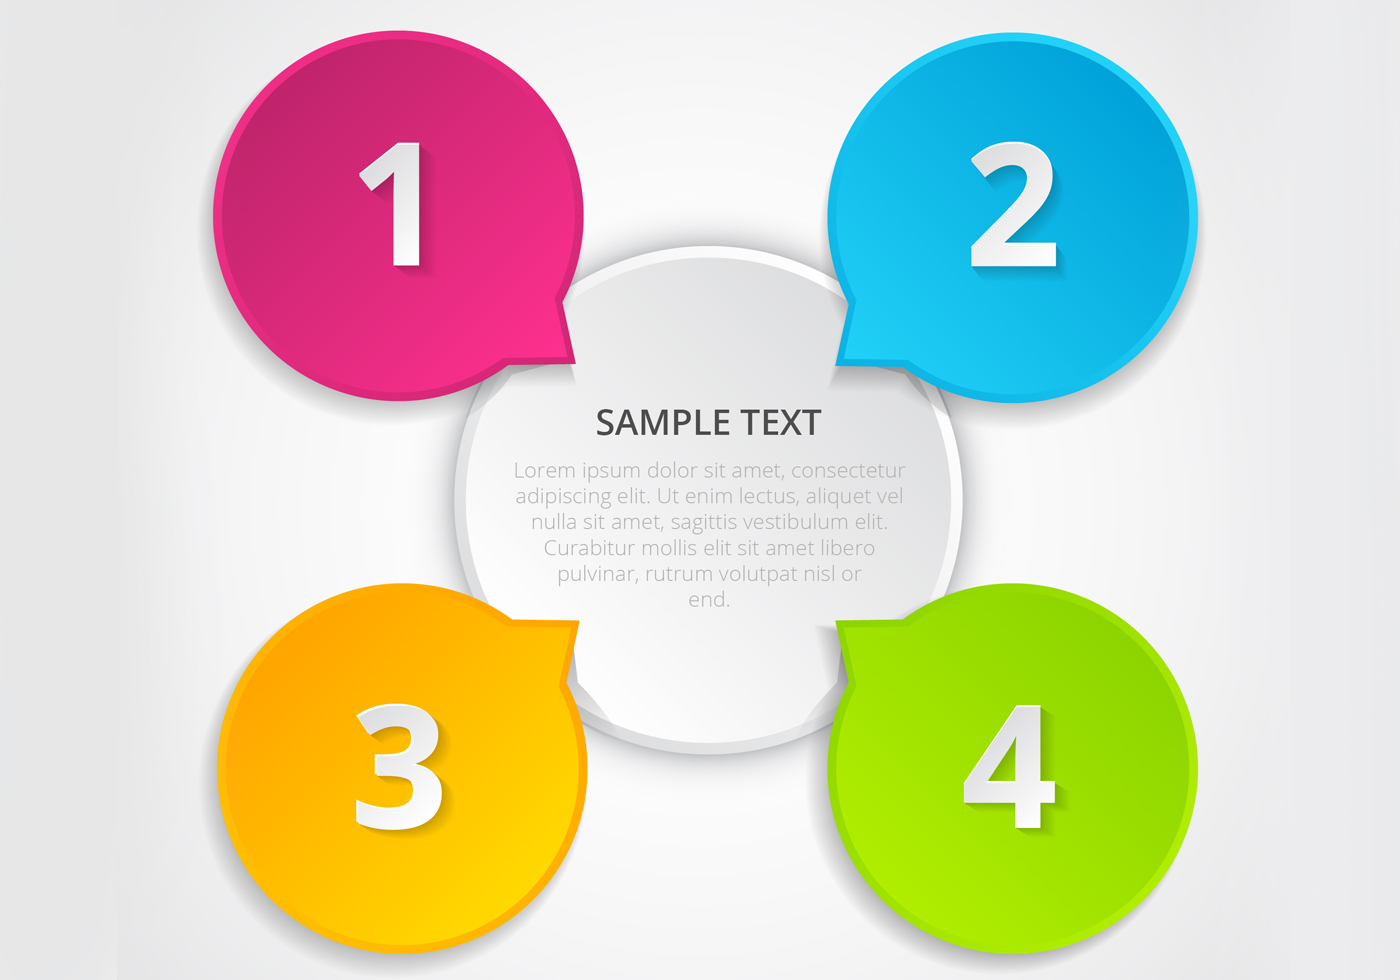 Colorful Infographic PSD Template - Free Photoshop Brushes ...